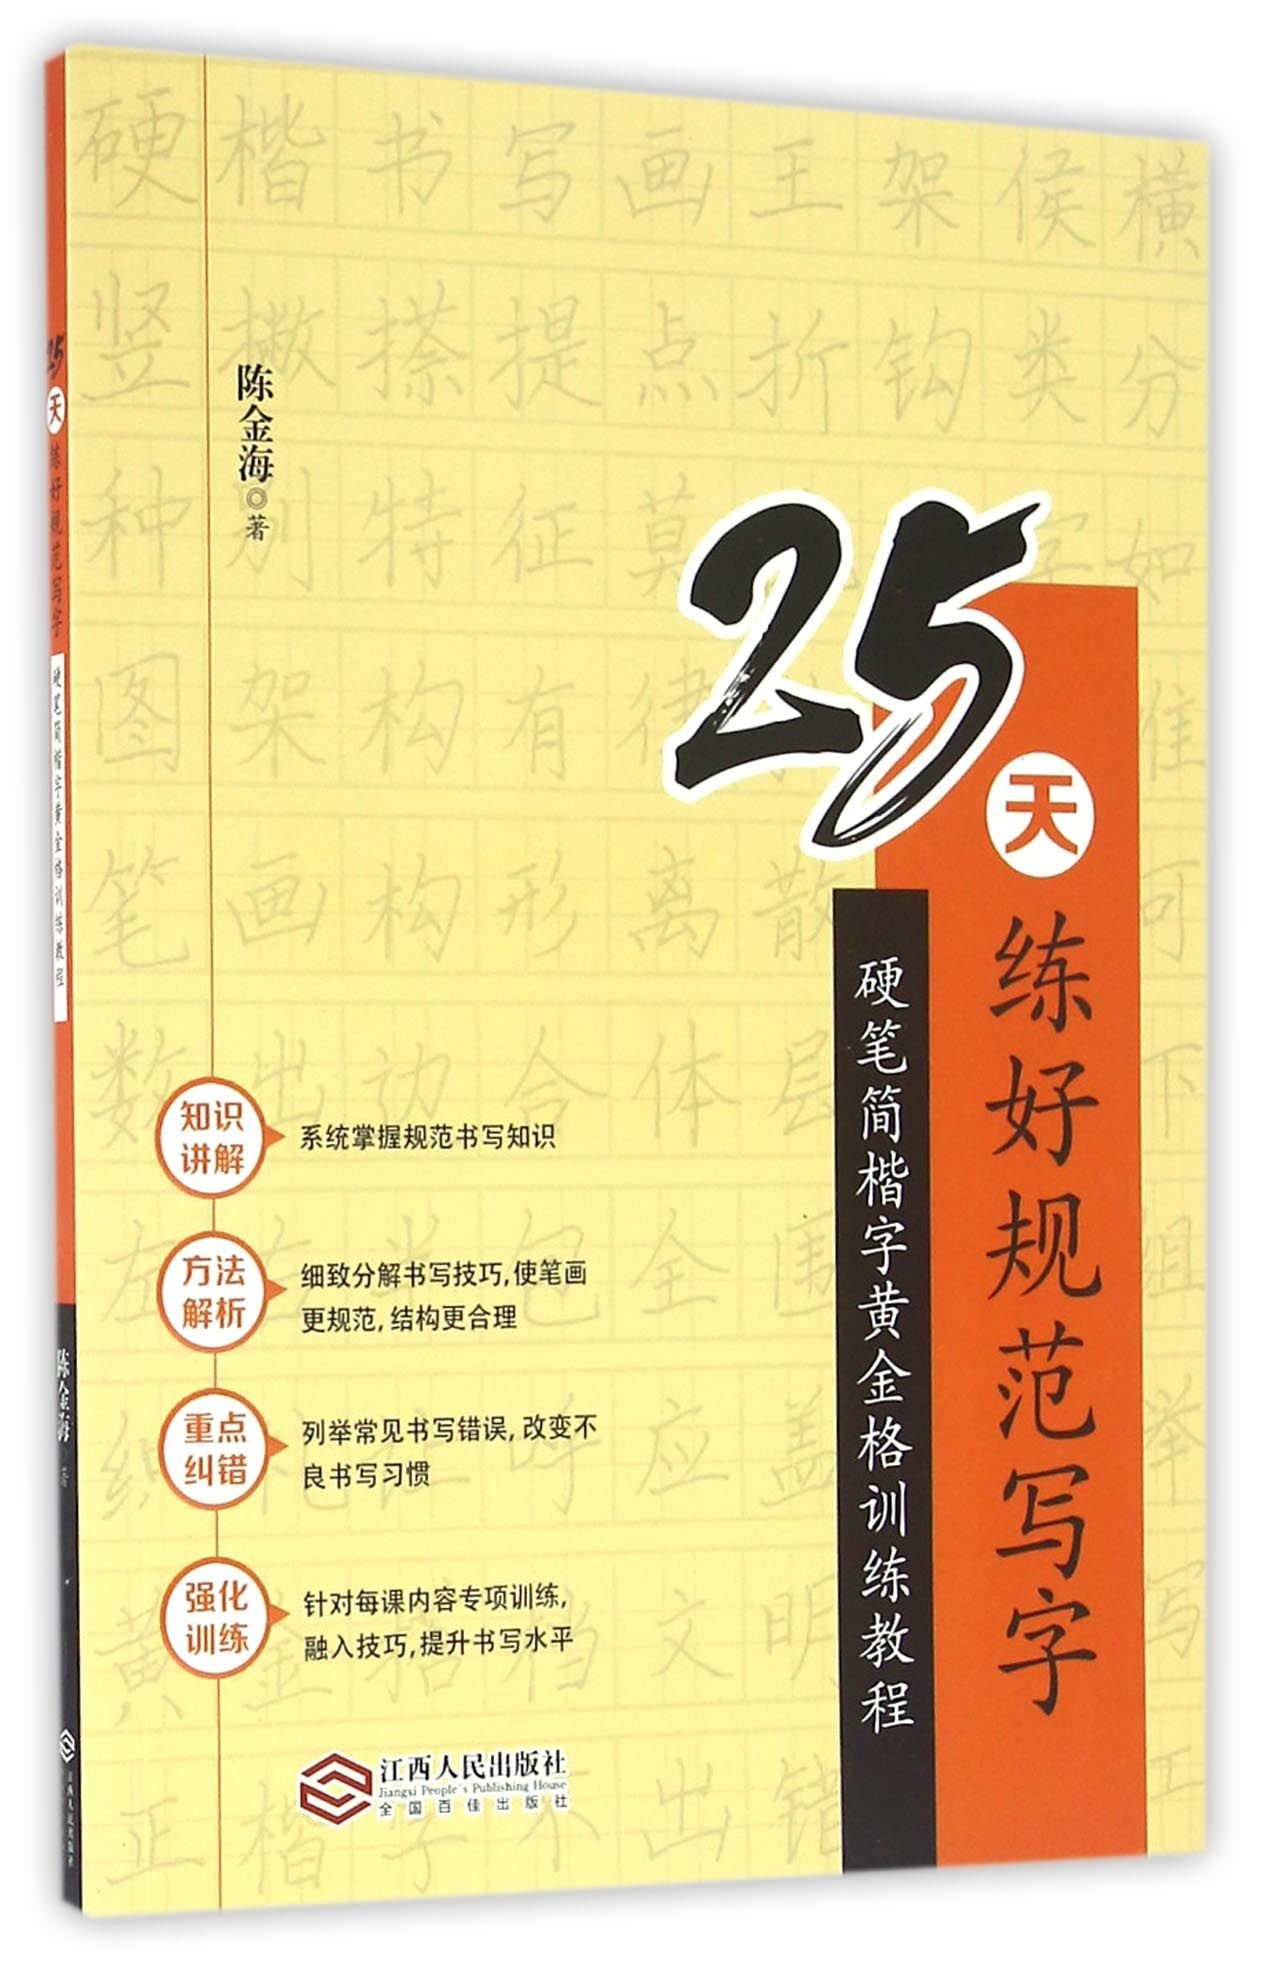 Download Master Standard Writing in 25 Days (Hard-pen Simple Regular Script Golden Ratio Training Course) (Chinese Edition) PDF